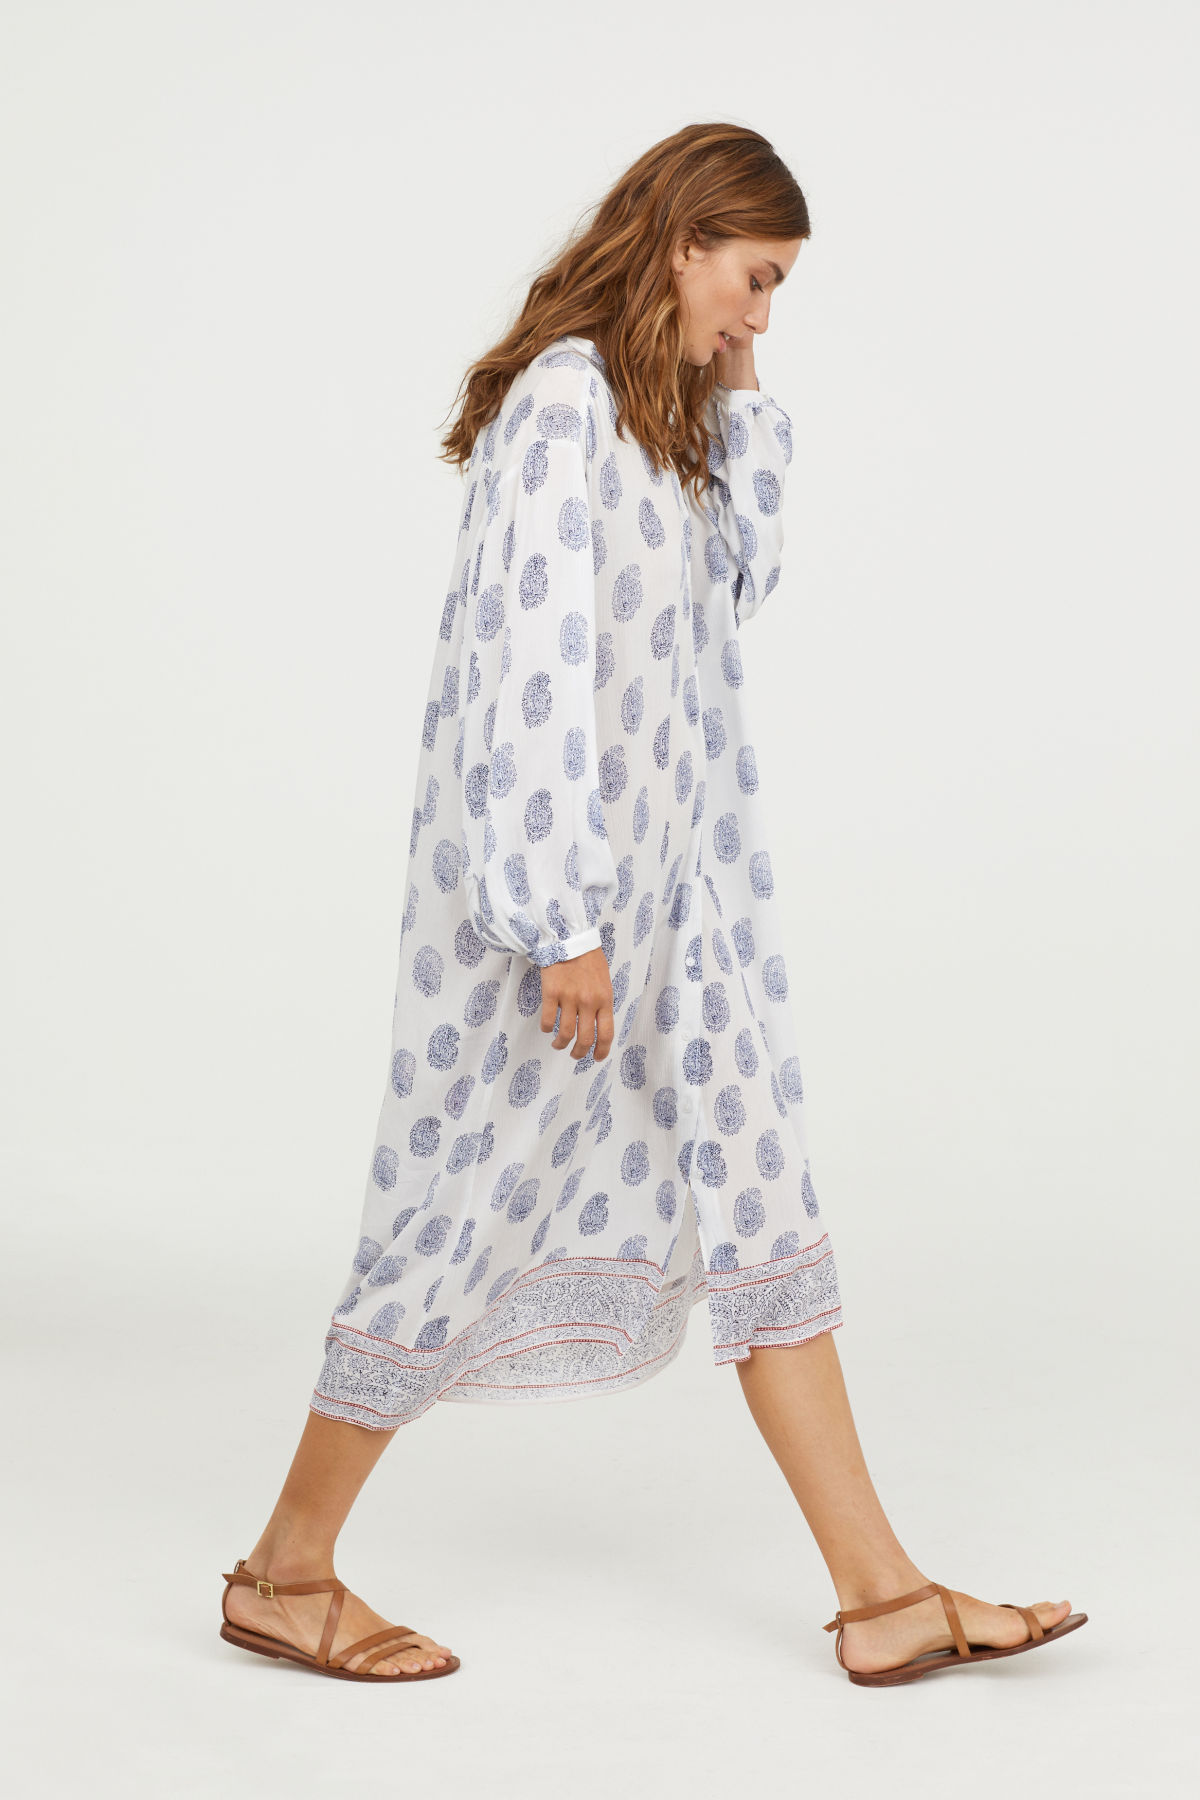 Printed Button-Up Dress Blue White Paisley Beach